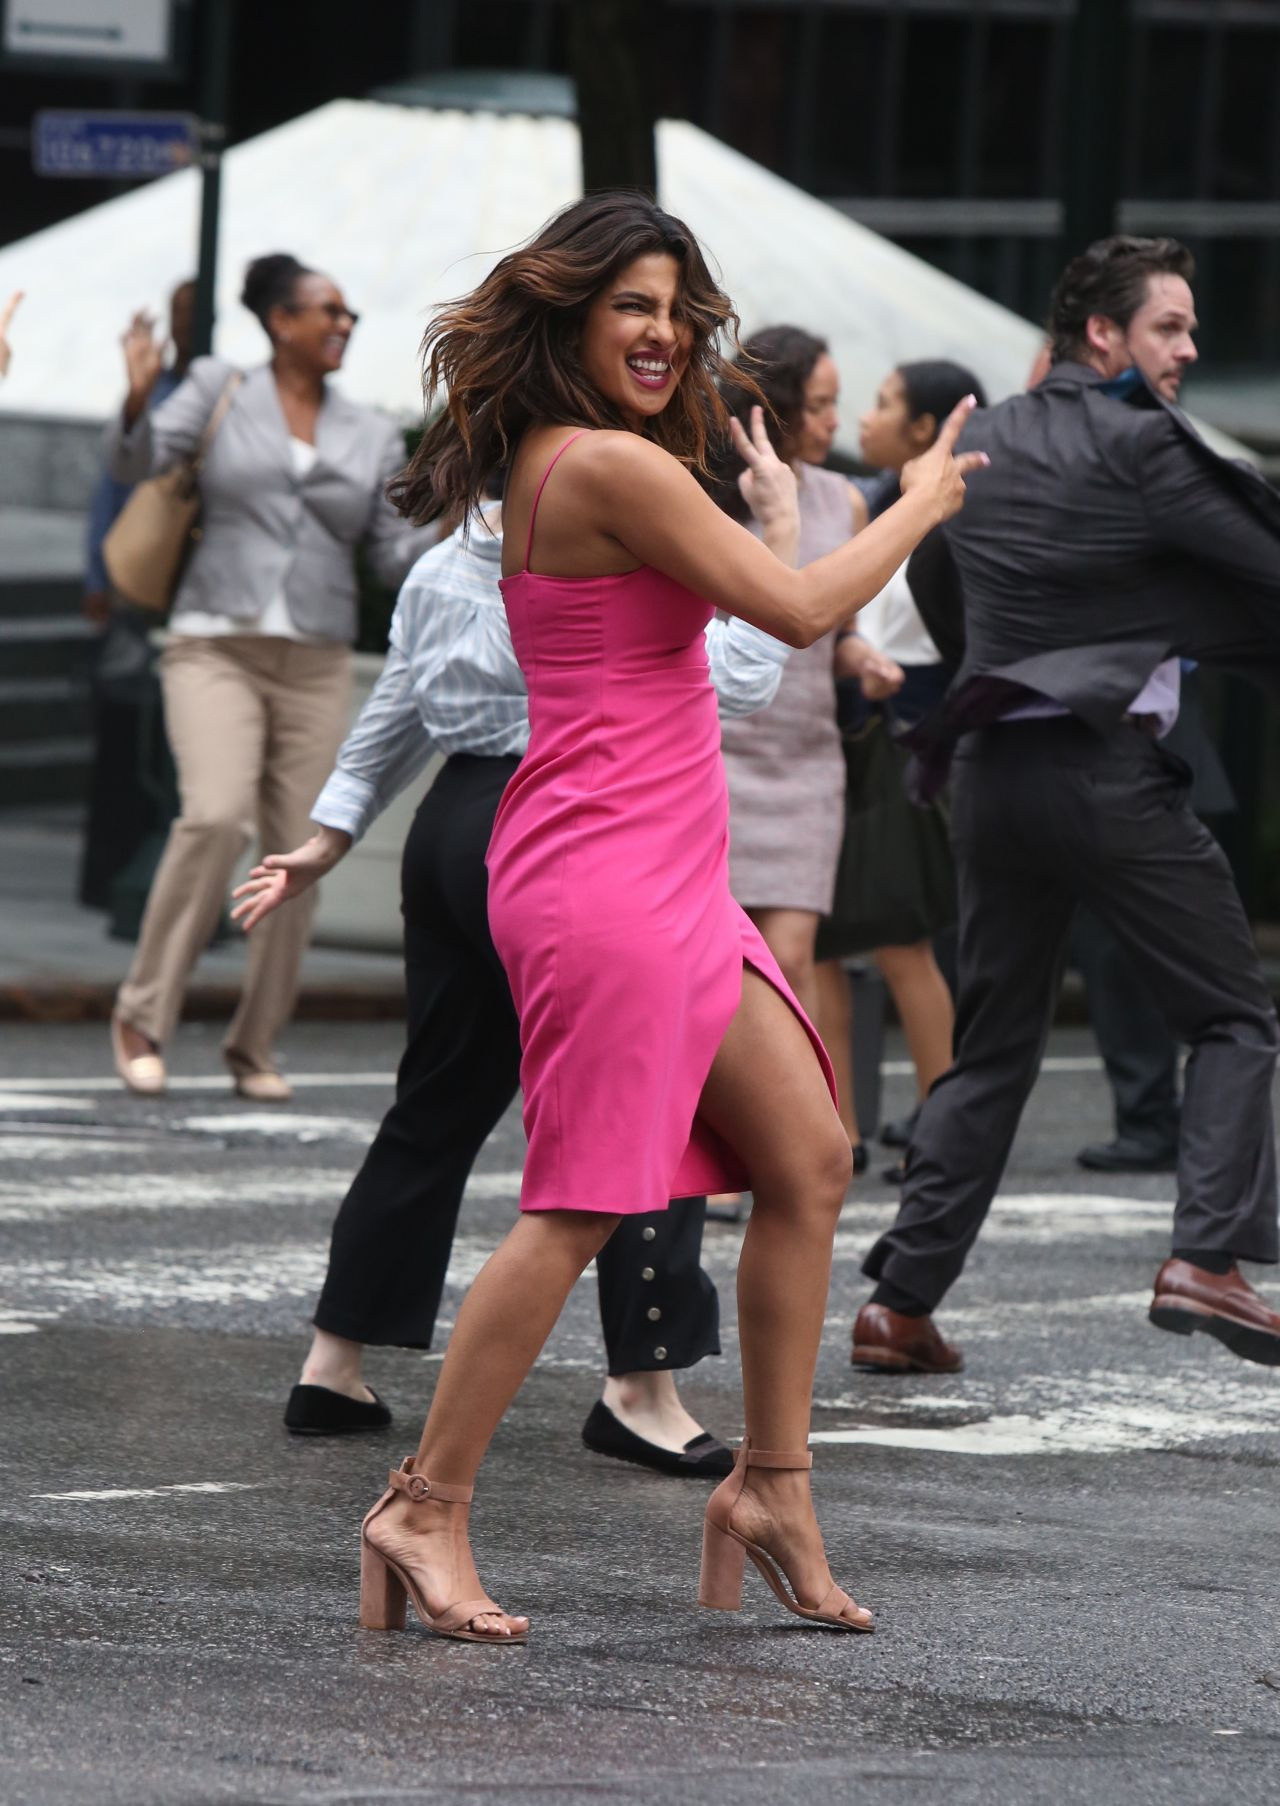 https://celebmafia.com/wp-content/uploads/2018/07/priyanka-chopra-liam-hemsworth-rebel-wilson-adam-devine-and-betty-gilpin-filming-a-dance-scene-for-isn-t-it-romantic-in-ny-18.jpg